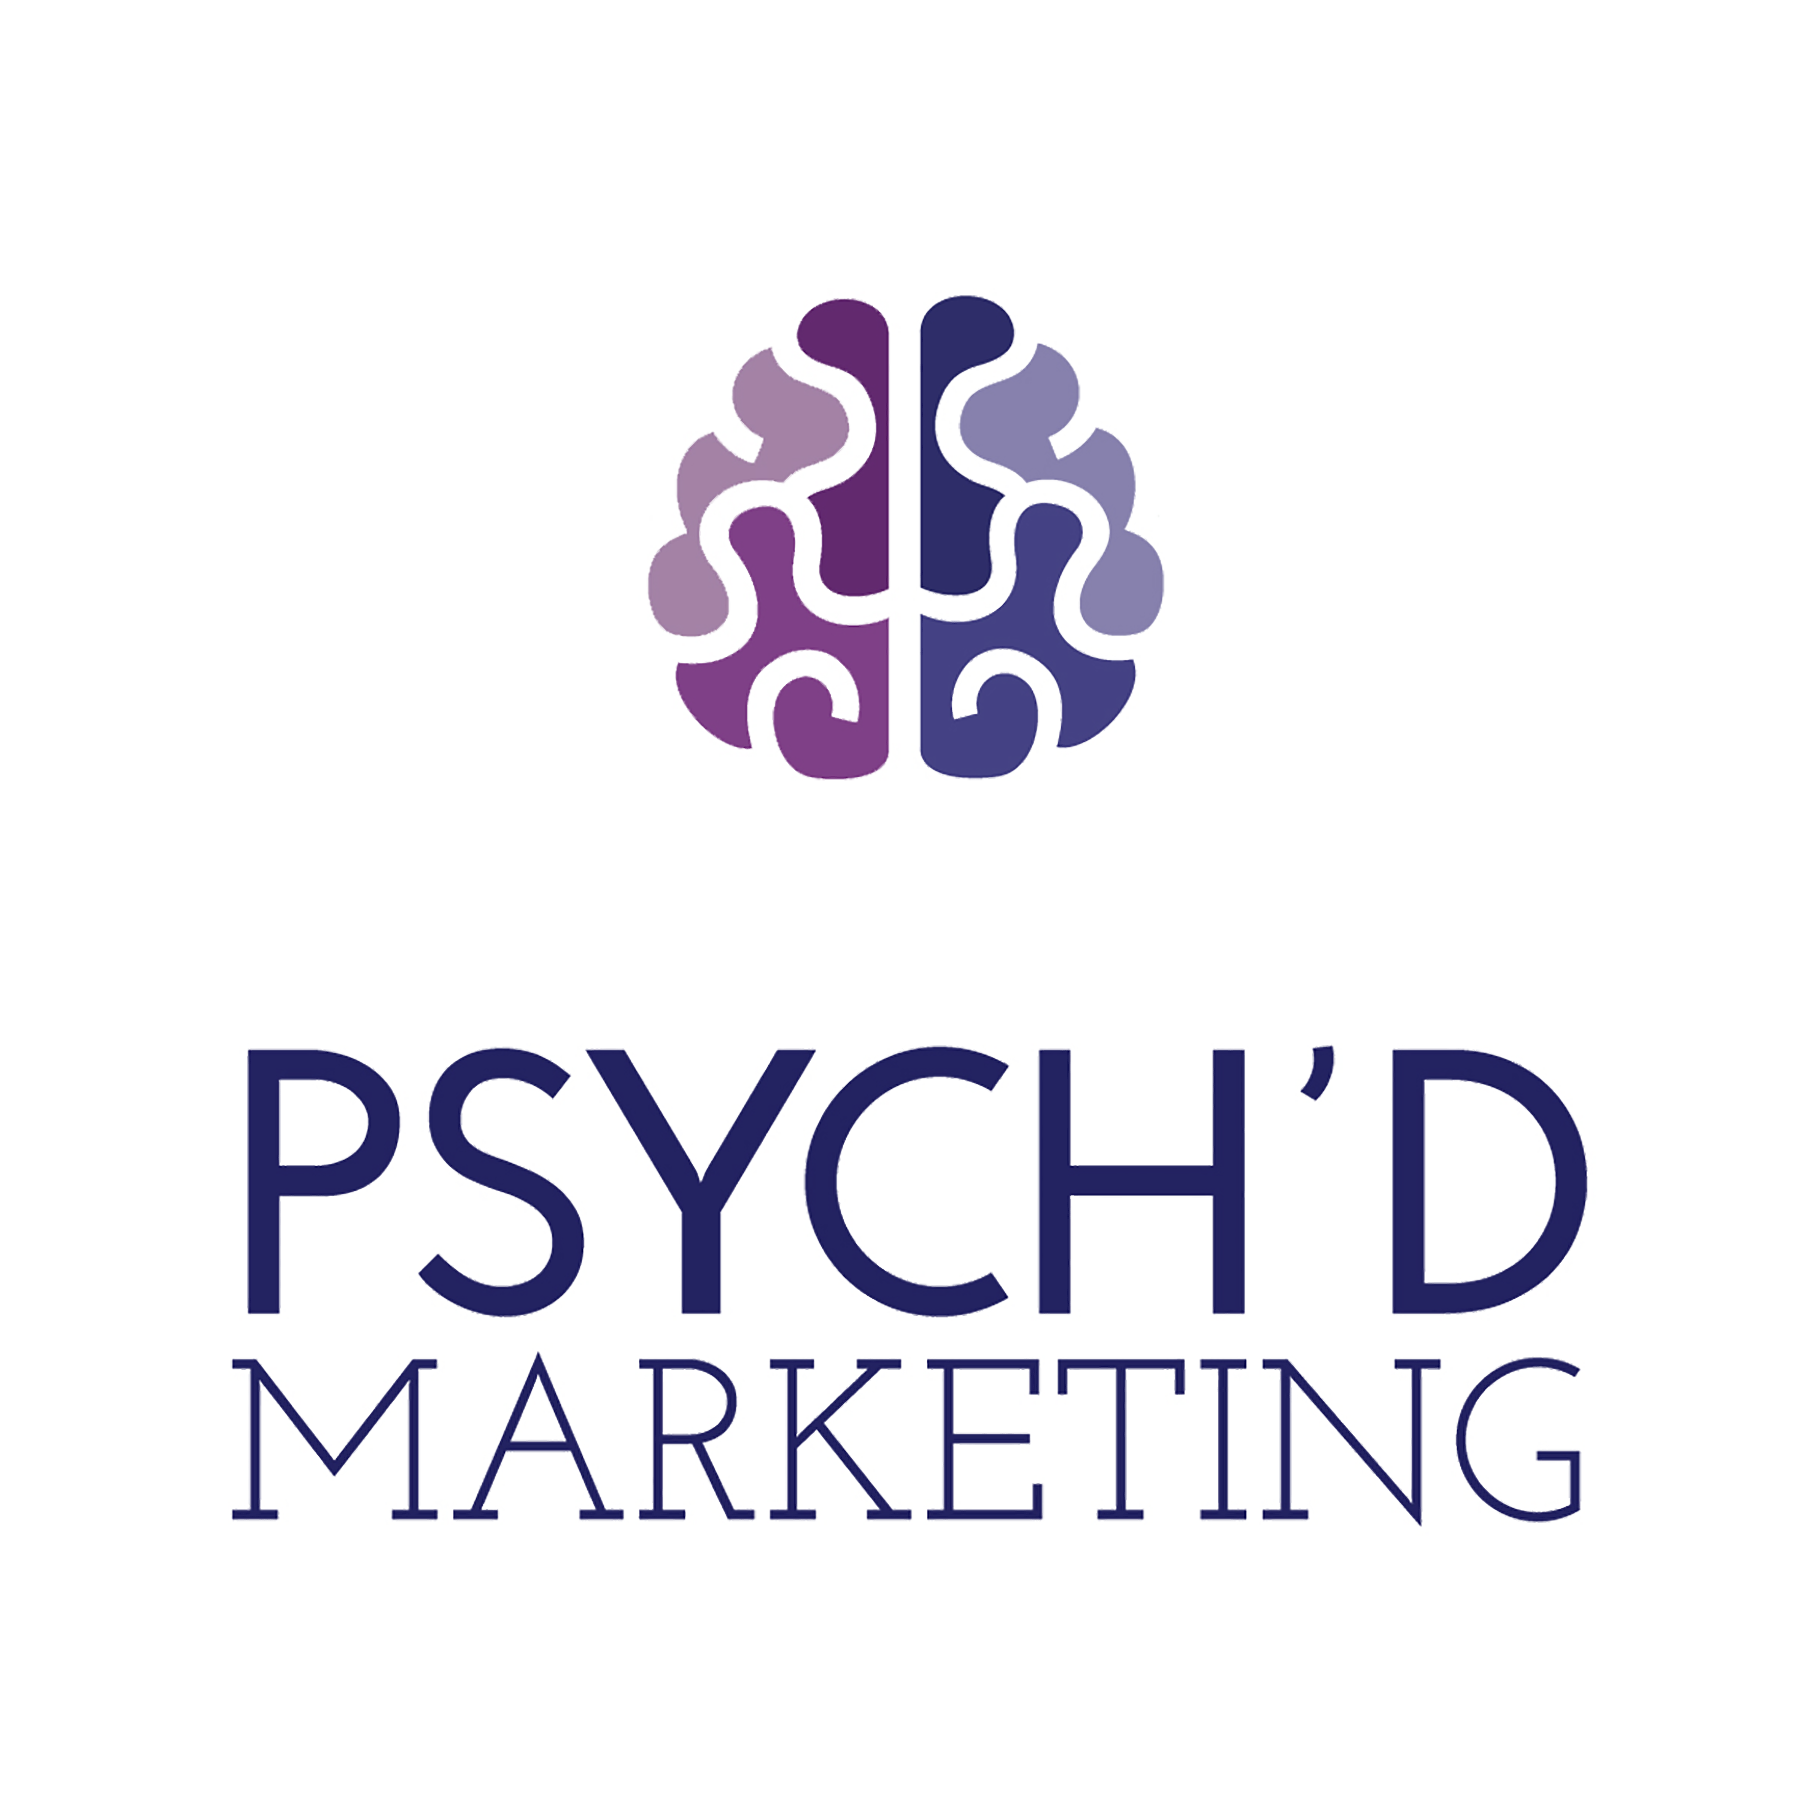 Psych'd Marketing